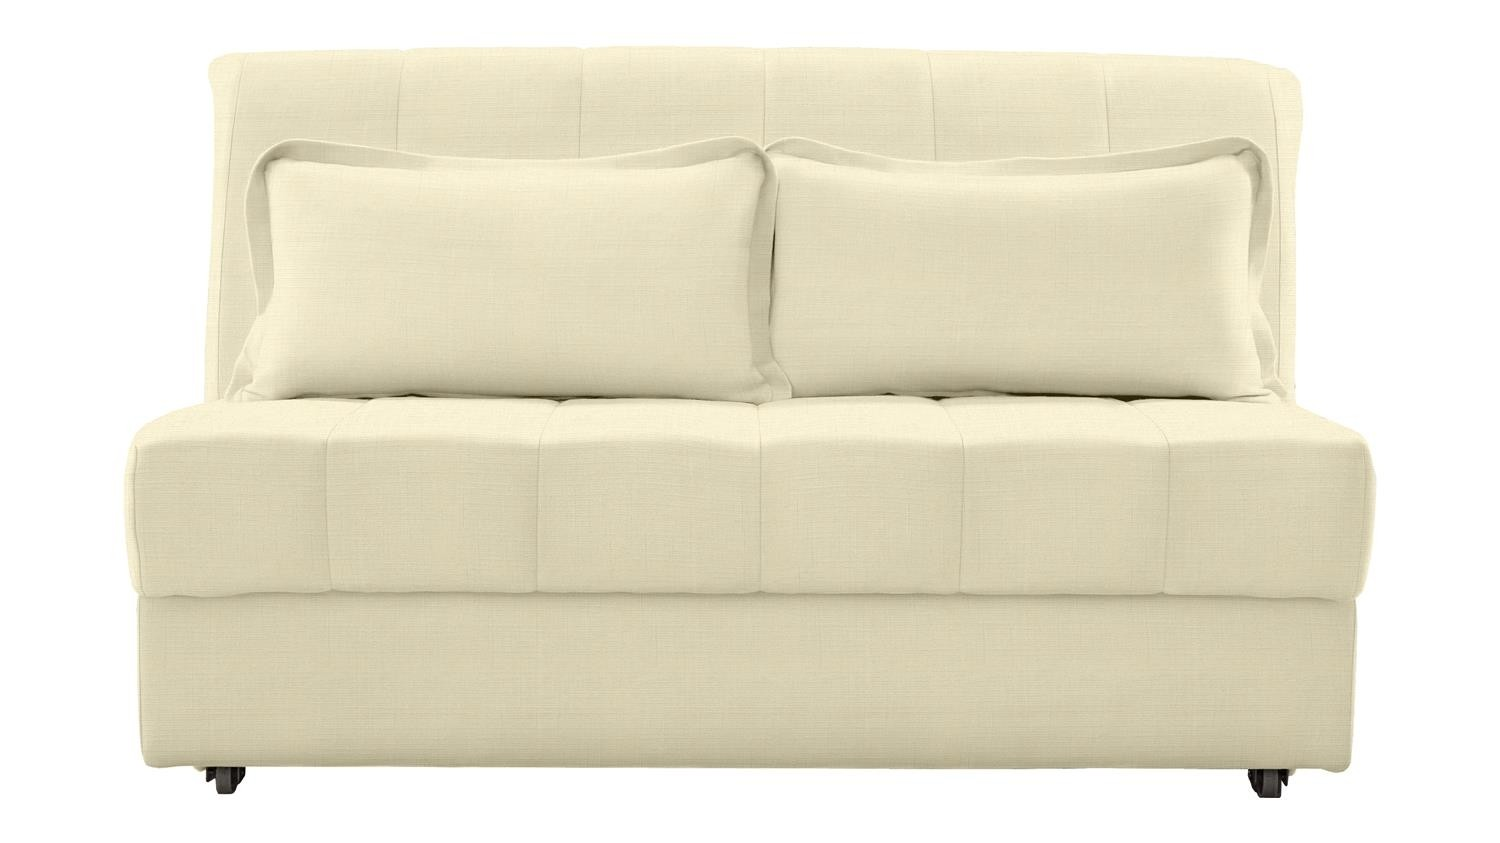 The Appley 2 Seater Sofa Bed